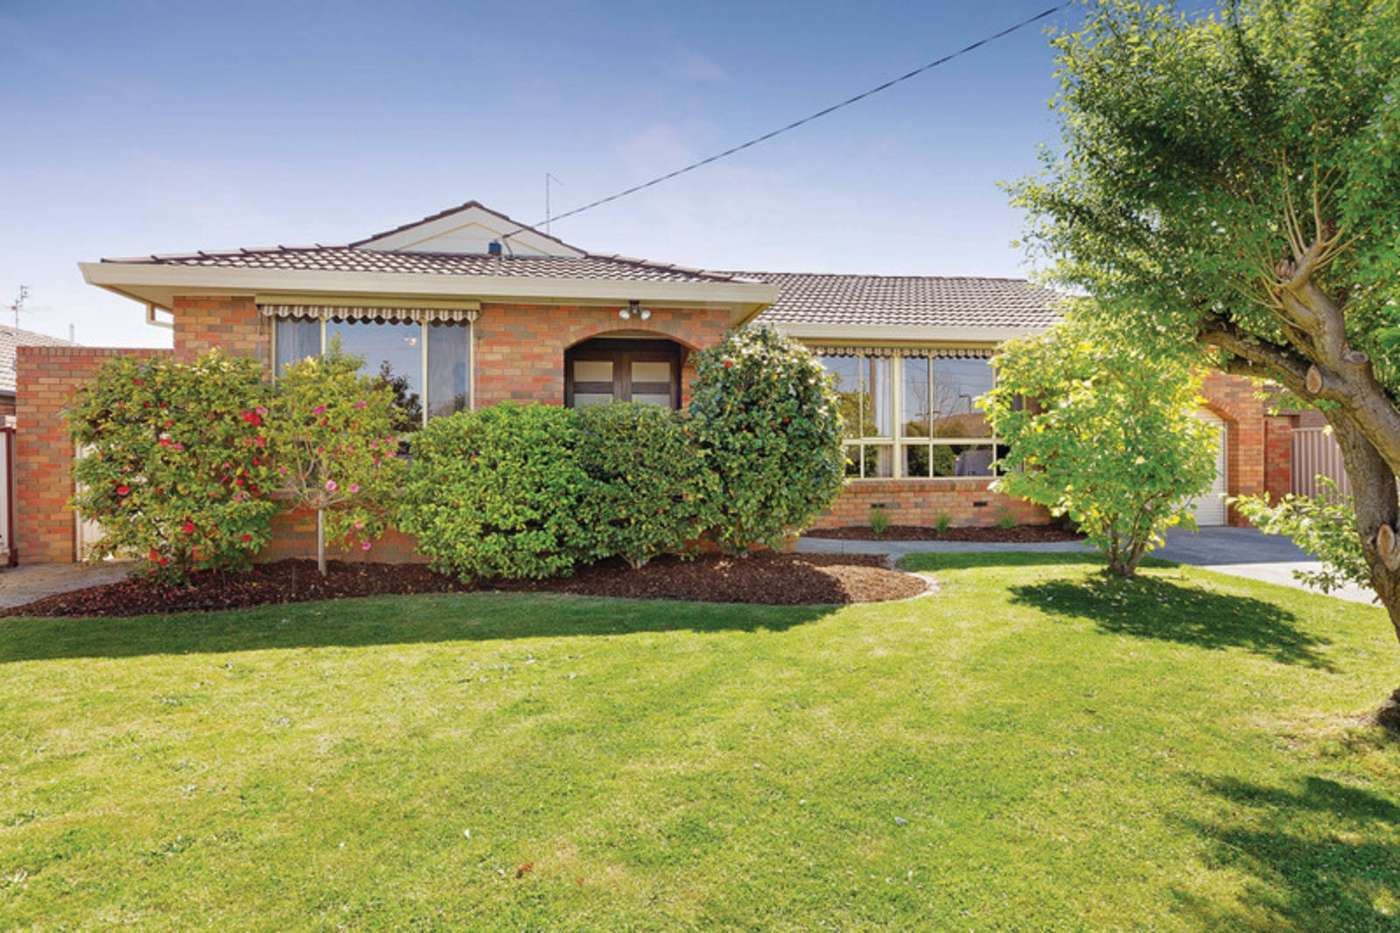 Main view of Homely house listing, 75 Grandview Grove, Wendouree, VIC 3355